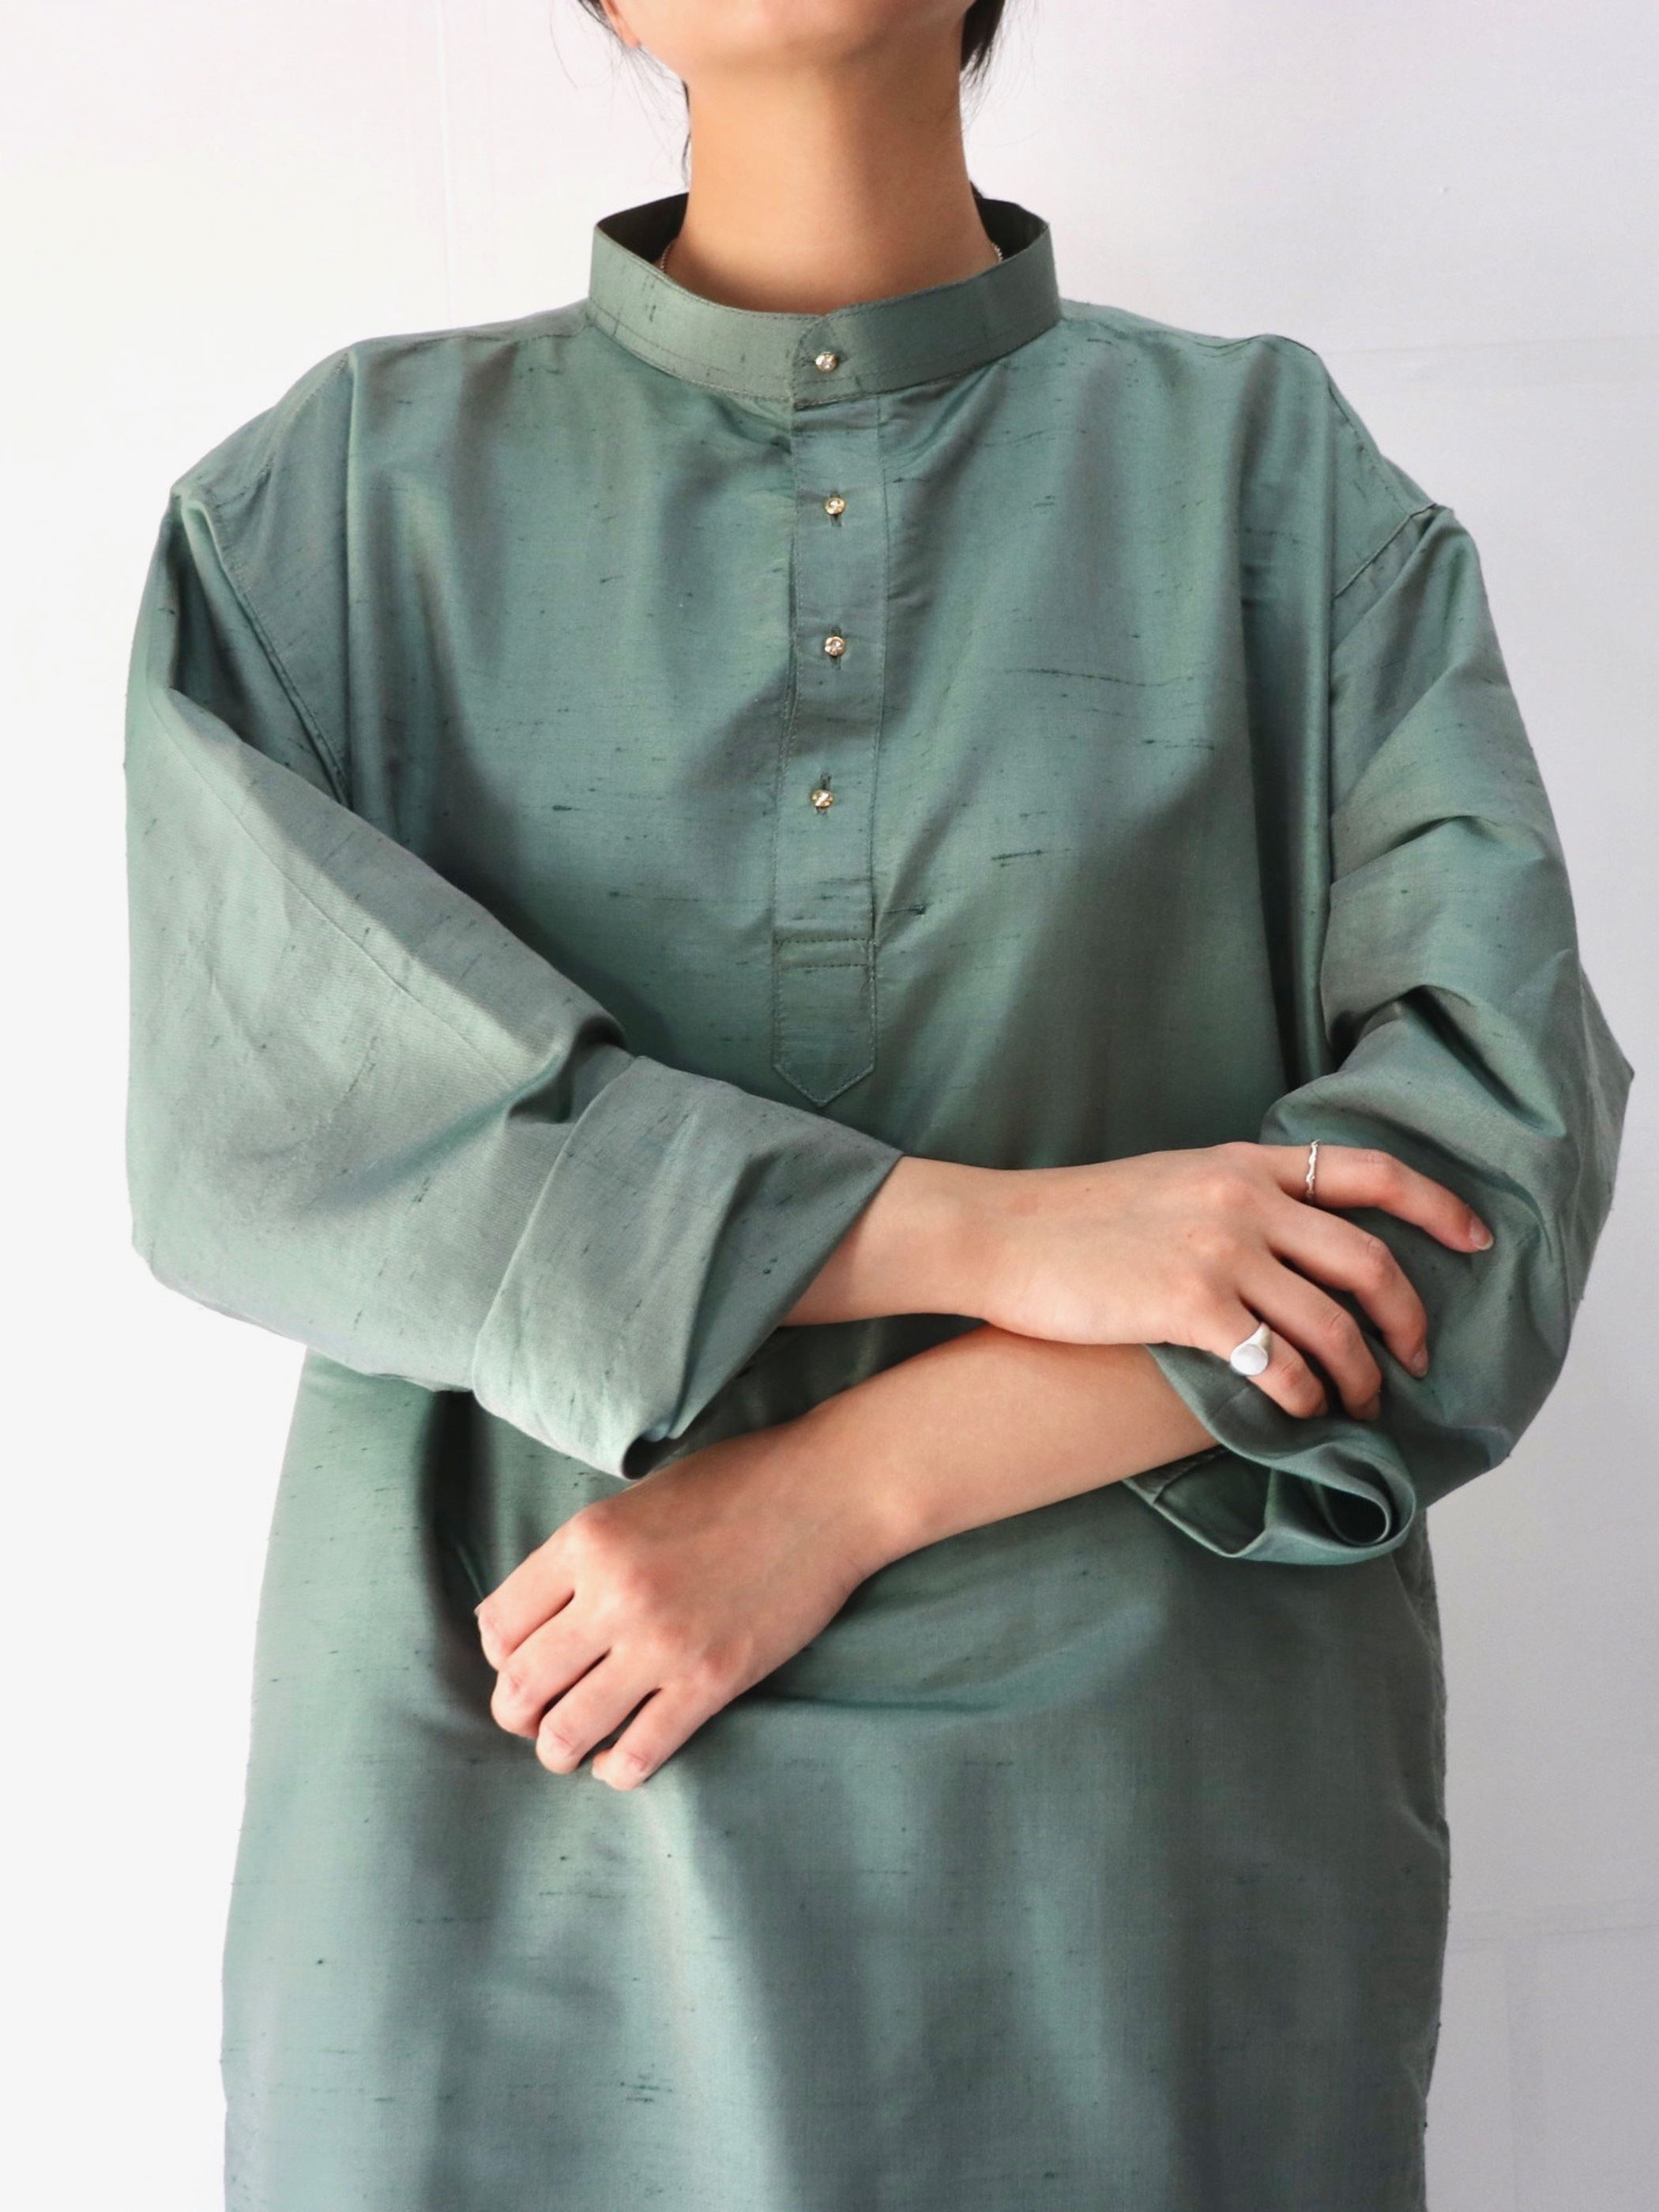 Caftan standcollar shirt one-piece